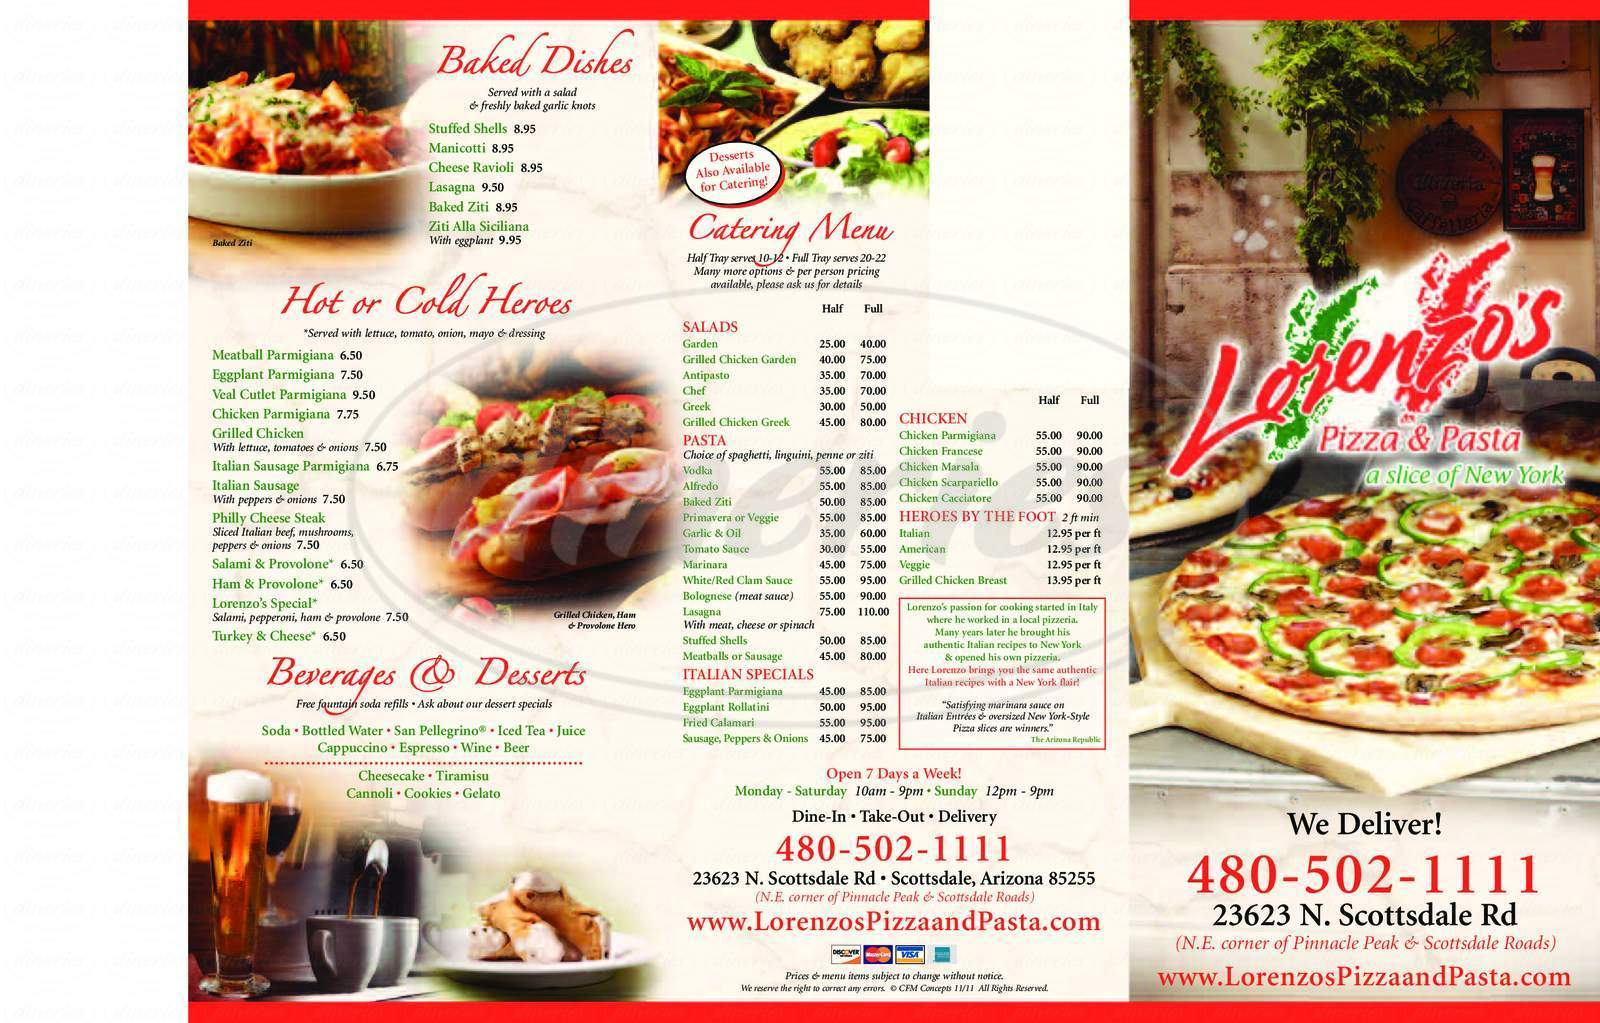 menu for Lorenzo's Pizza and Pasta